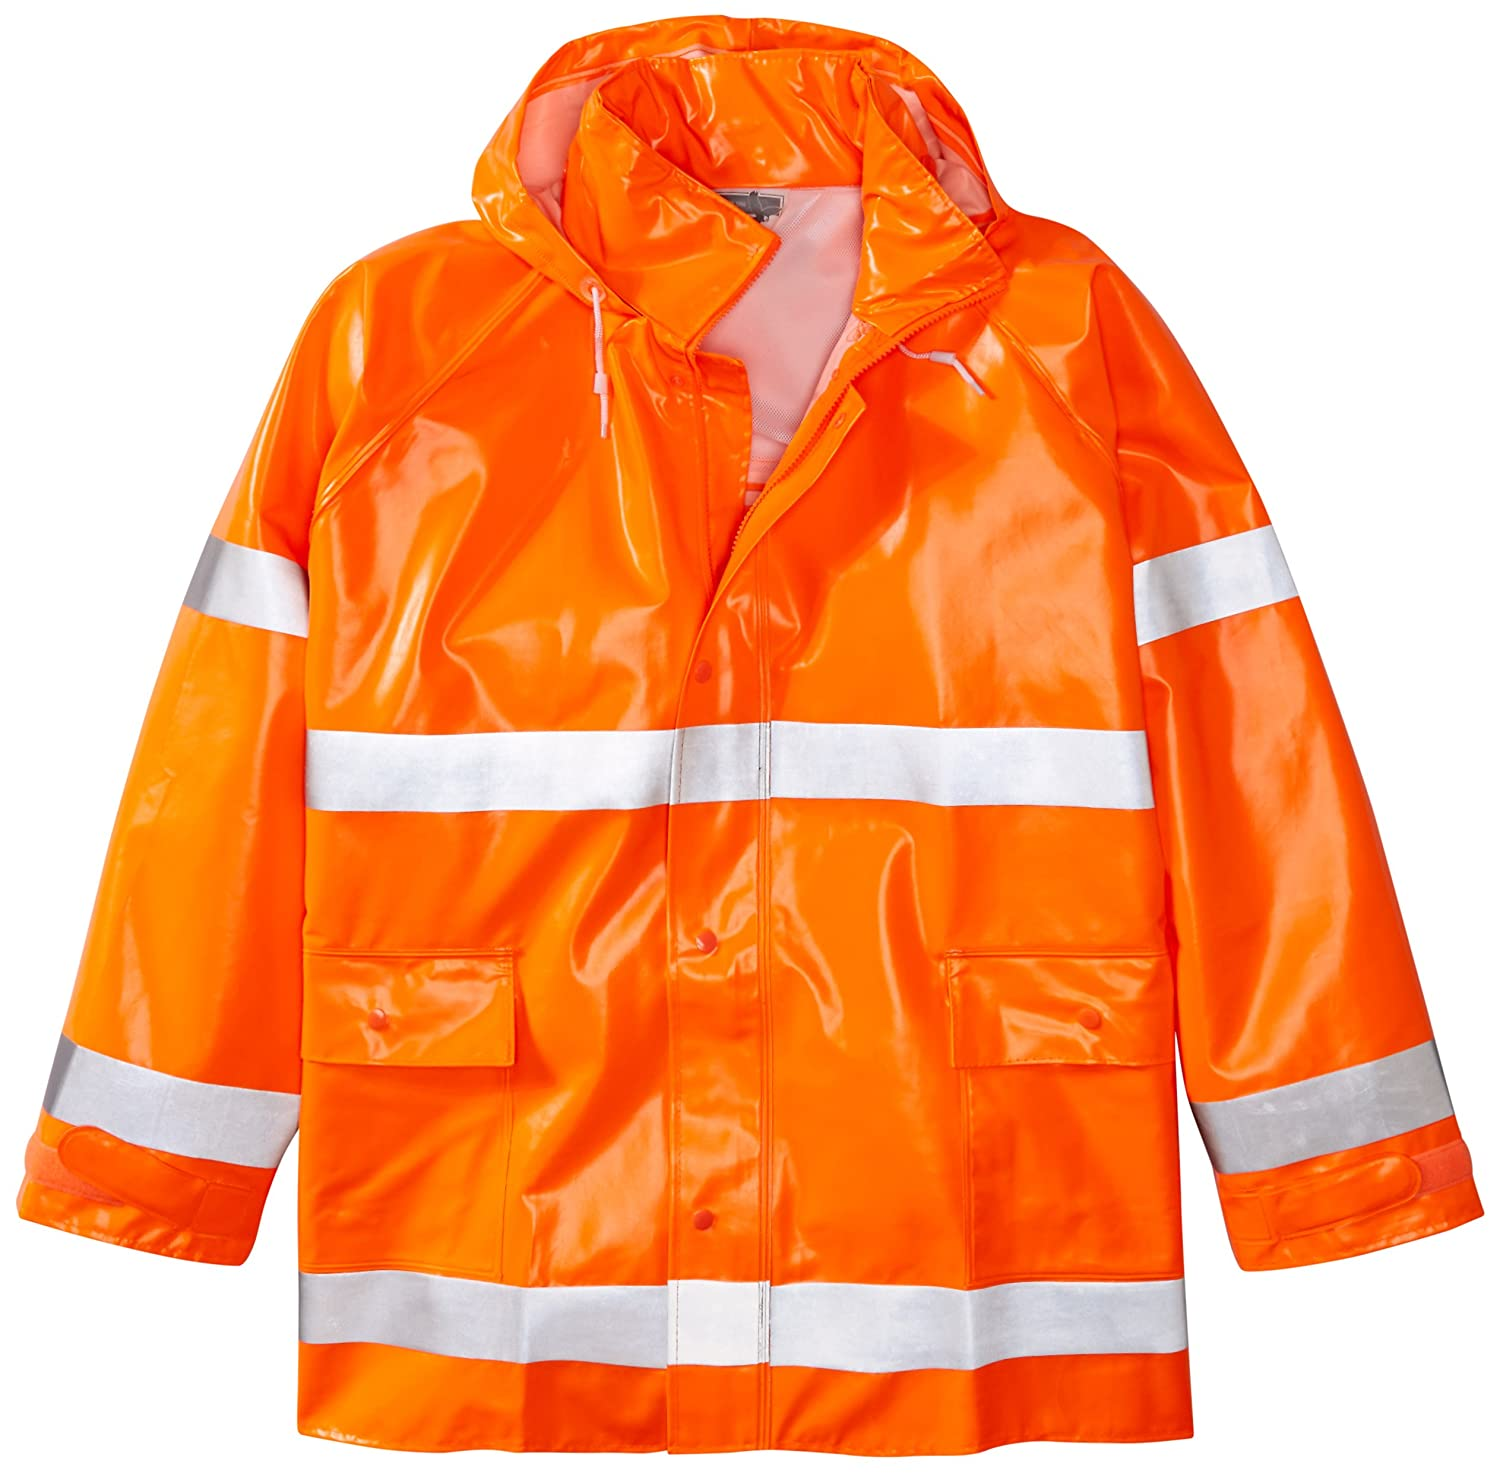 TINGLEY J53129 ComfortBrite Flame Resistant Rain Jacket Orange XL